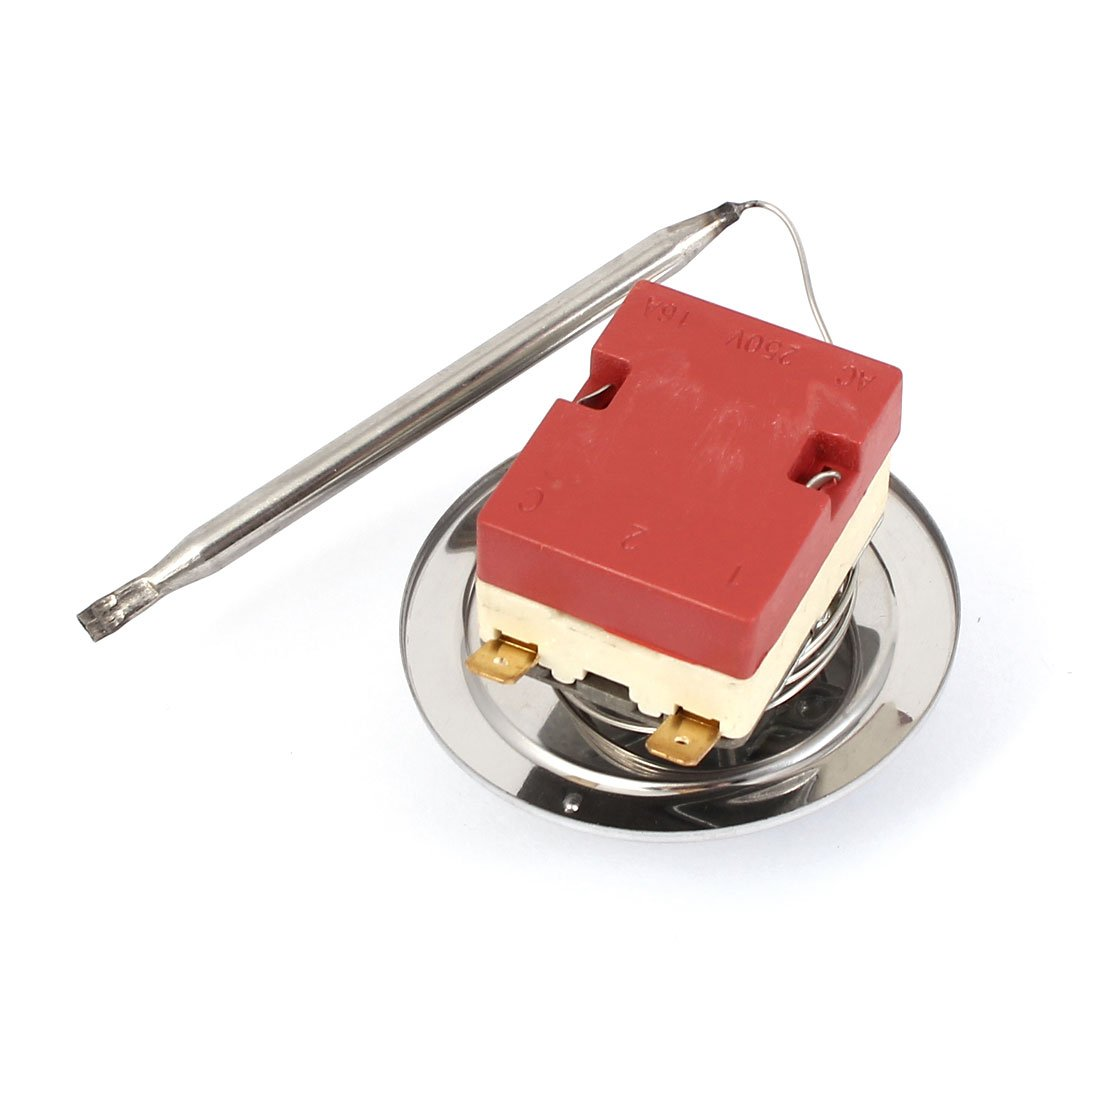 uxcell NC Adjustable Temperature Control Switch Thermostat 30-85 Degree Celsius US-SA-AJD-215617